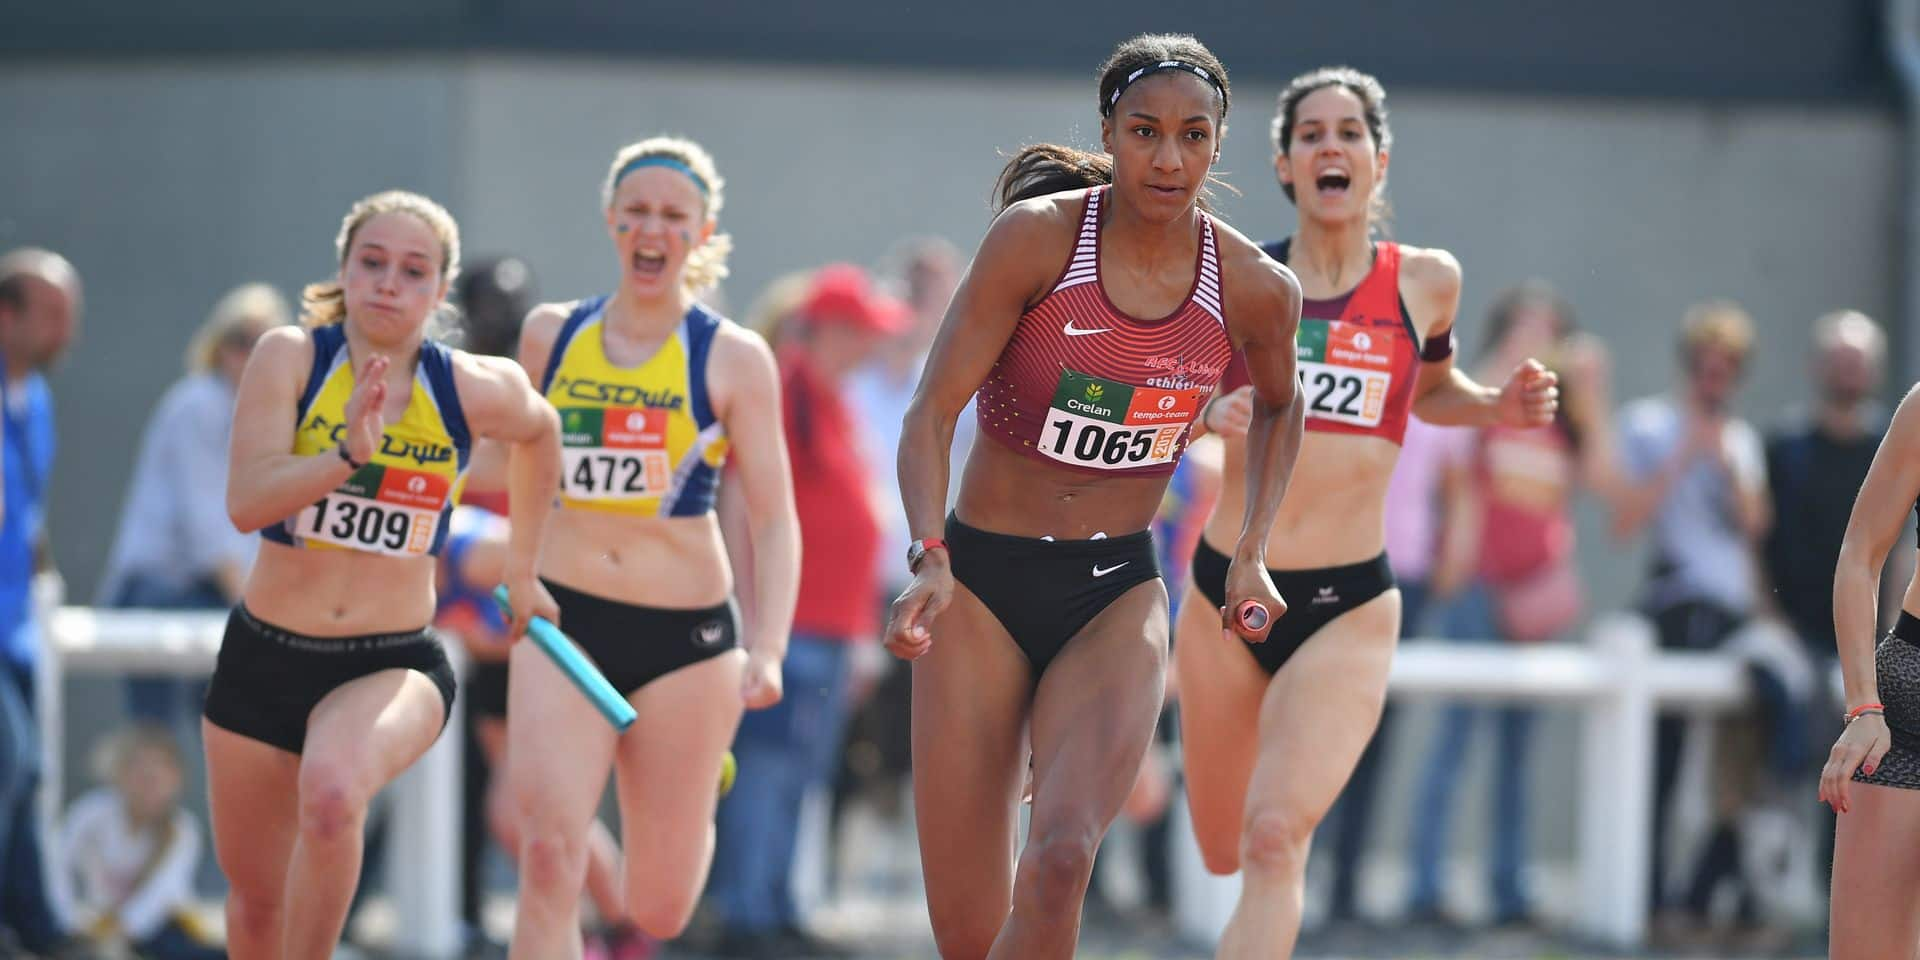 Belgian athlete Nafissatou 'Nafi' Thiam (C) pictured in action during the 4x100m relay race at the RUSTA Intercercles women's athletics meeting, Saturday 18 May 2019 in Gaurain-Ramecroix, Tournai. BELGA PHOTO DAVID STOCKMAN